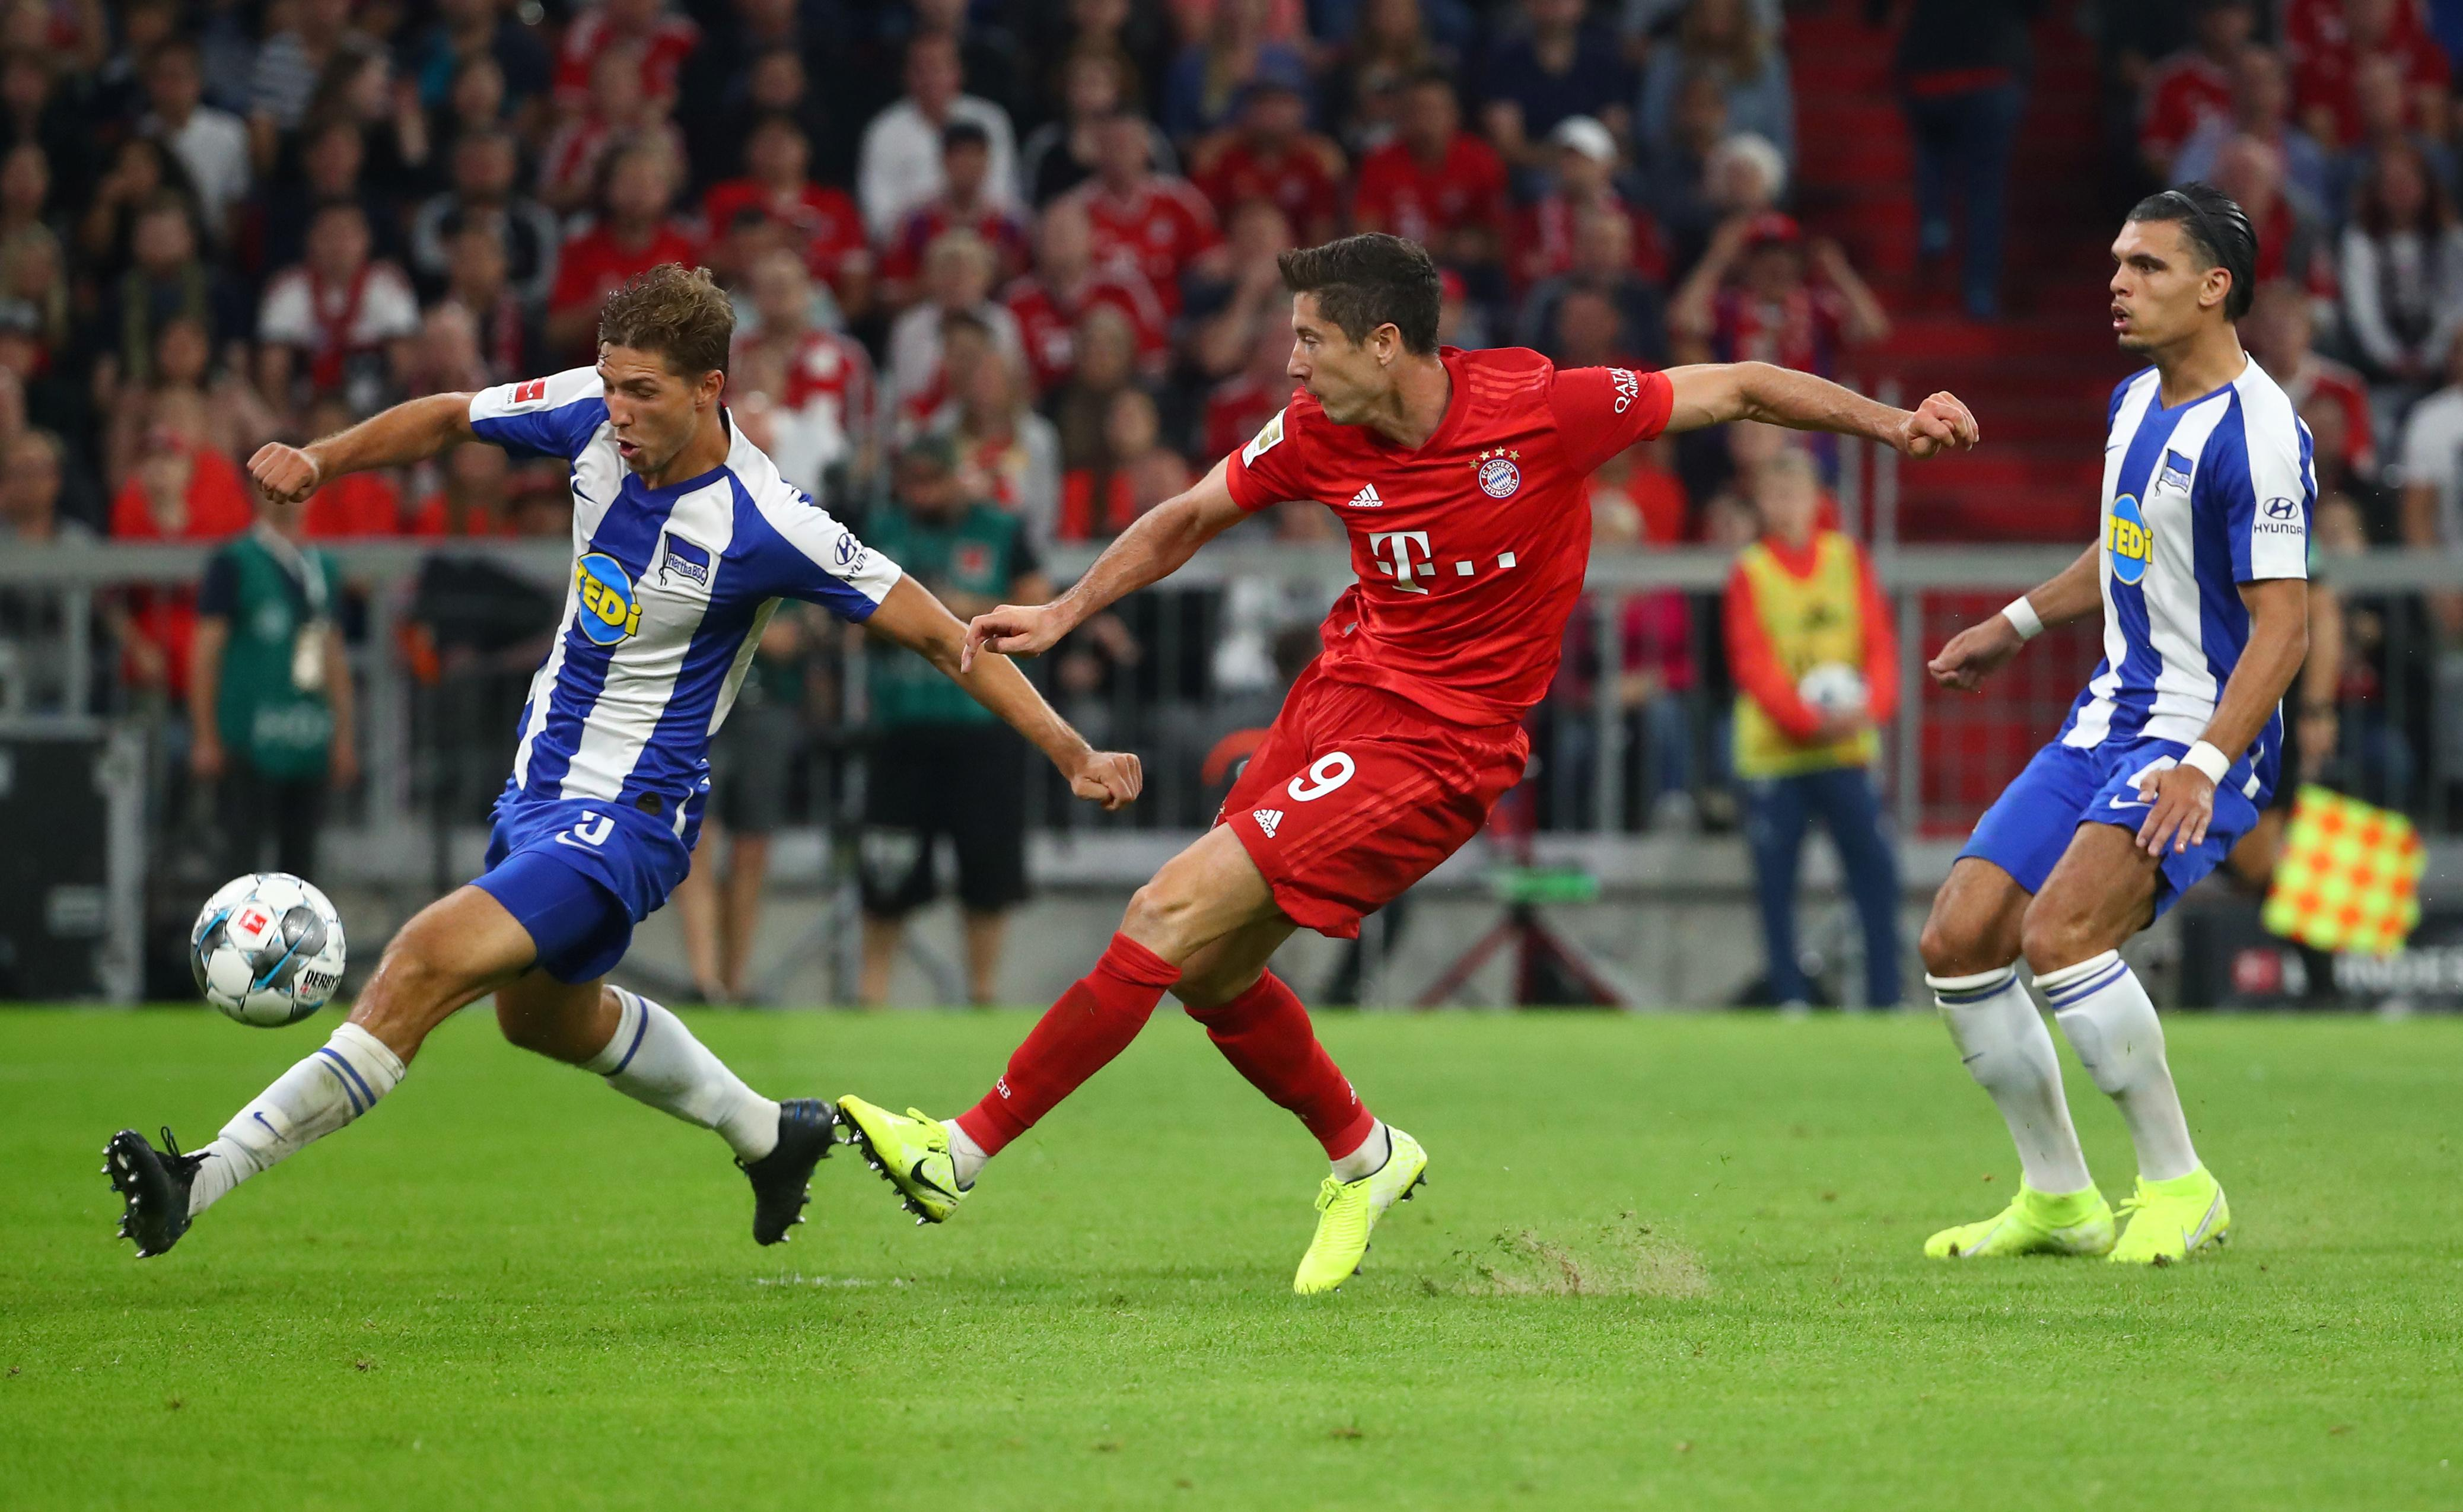 Soccer: Lewandowski double rescues draw for Bayern in season opener